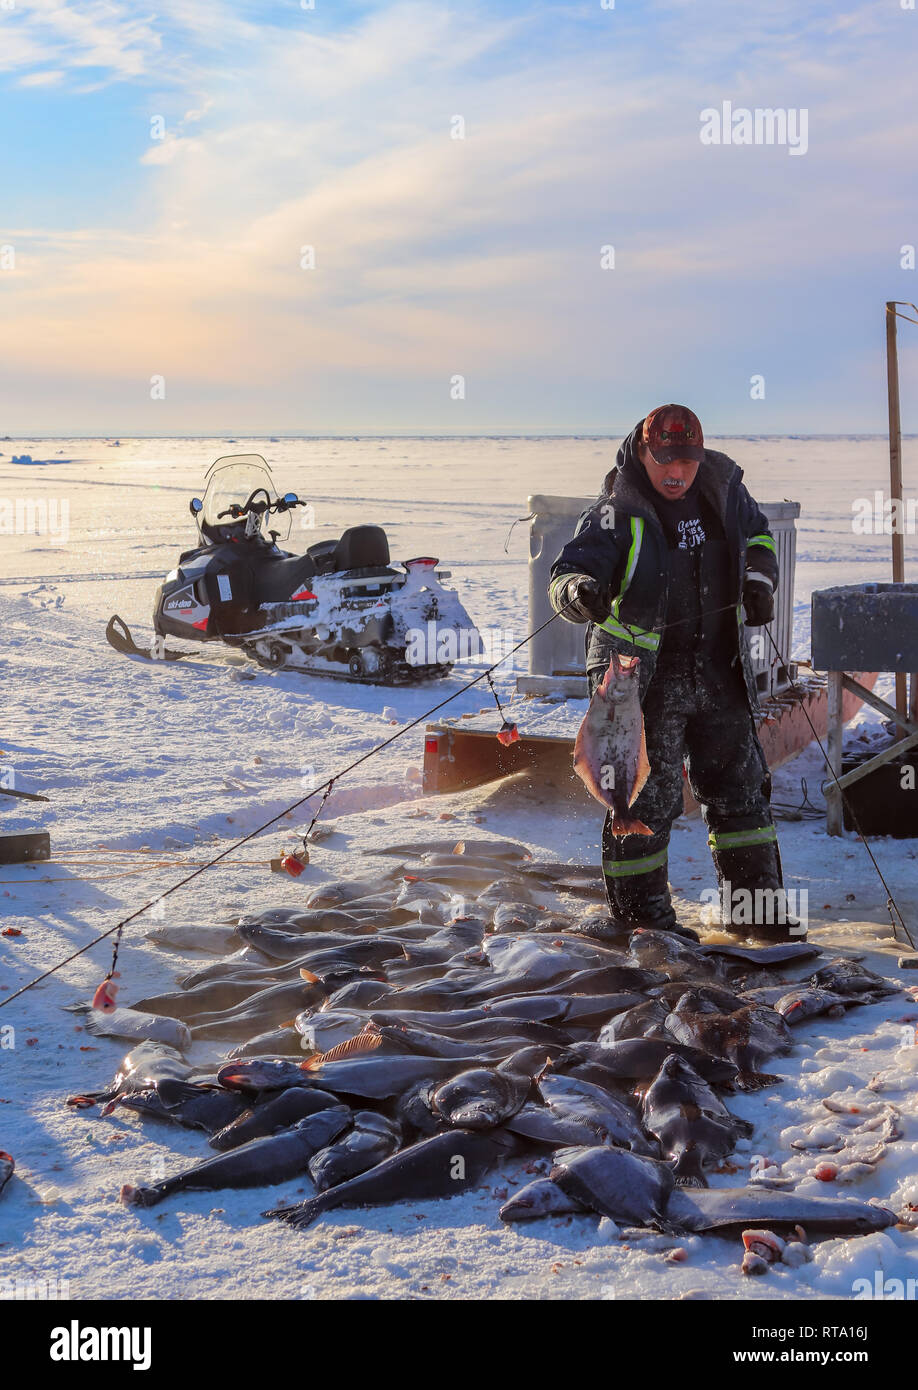 inuit man stands over his haul - Stock Image